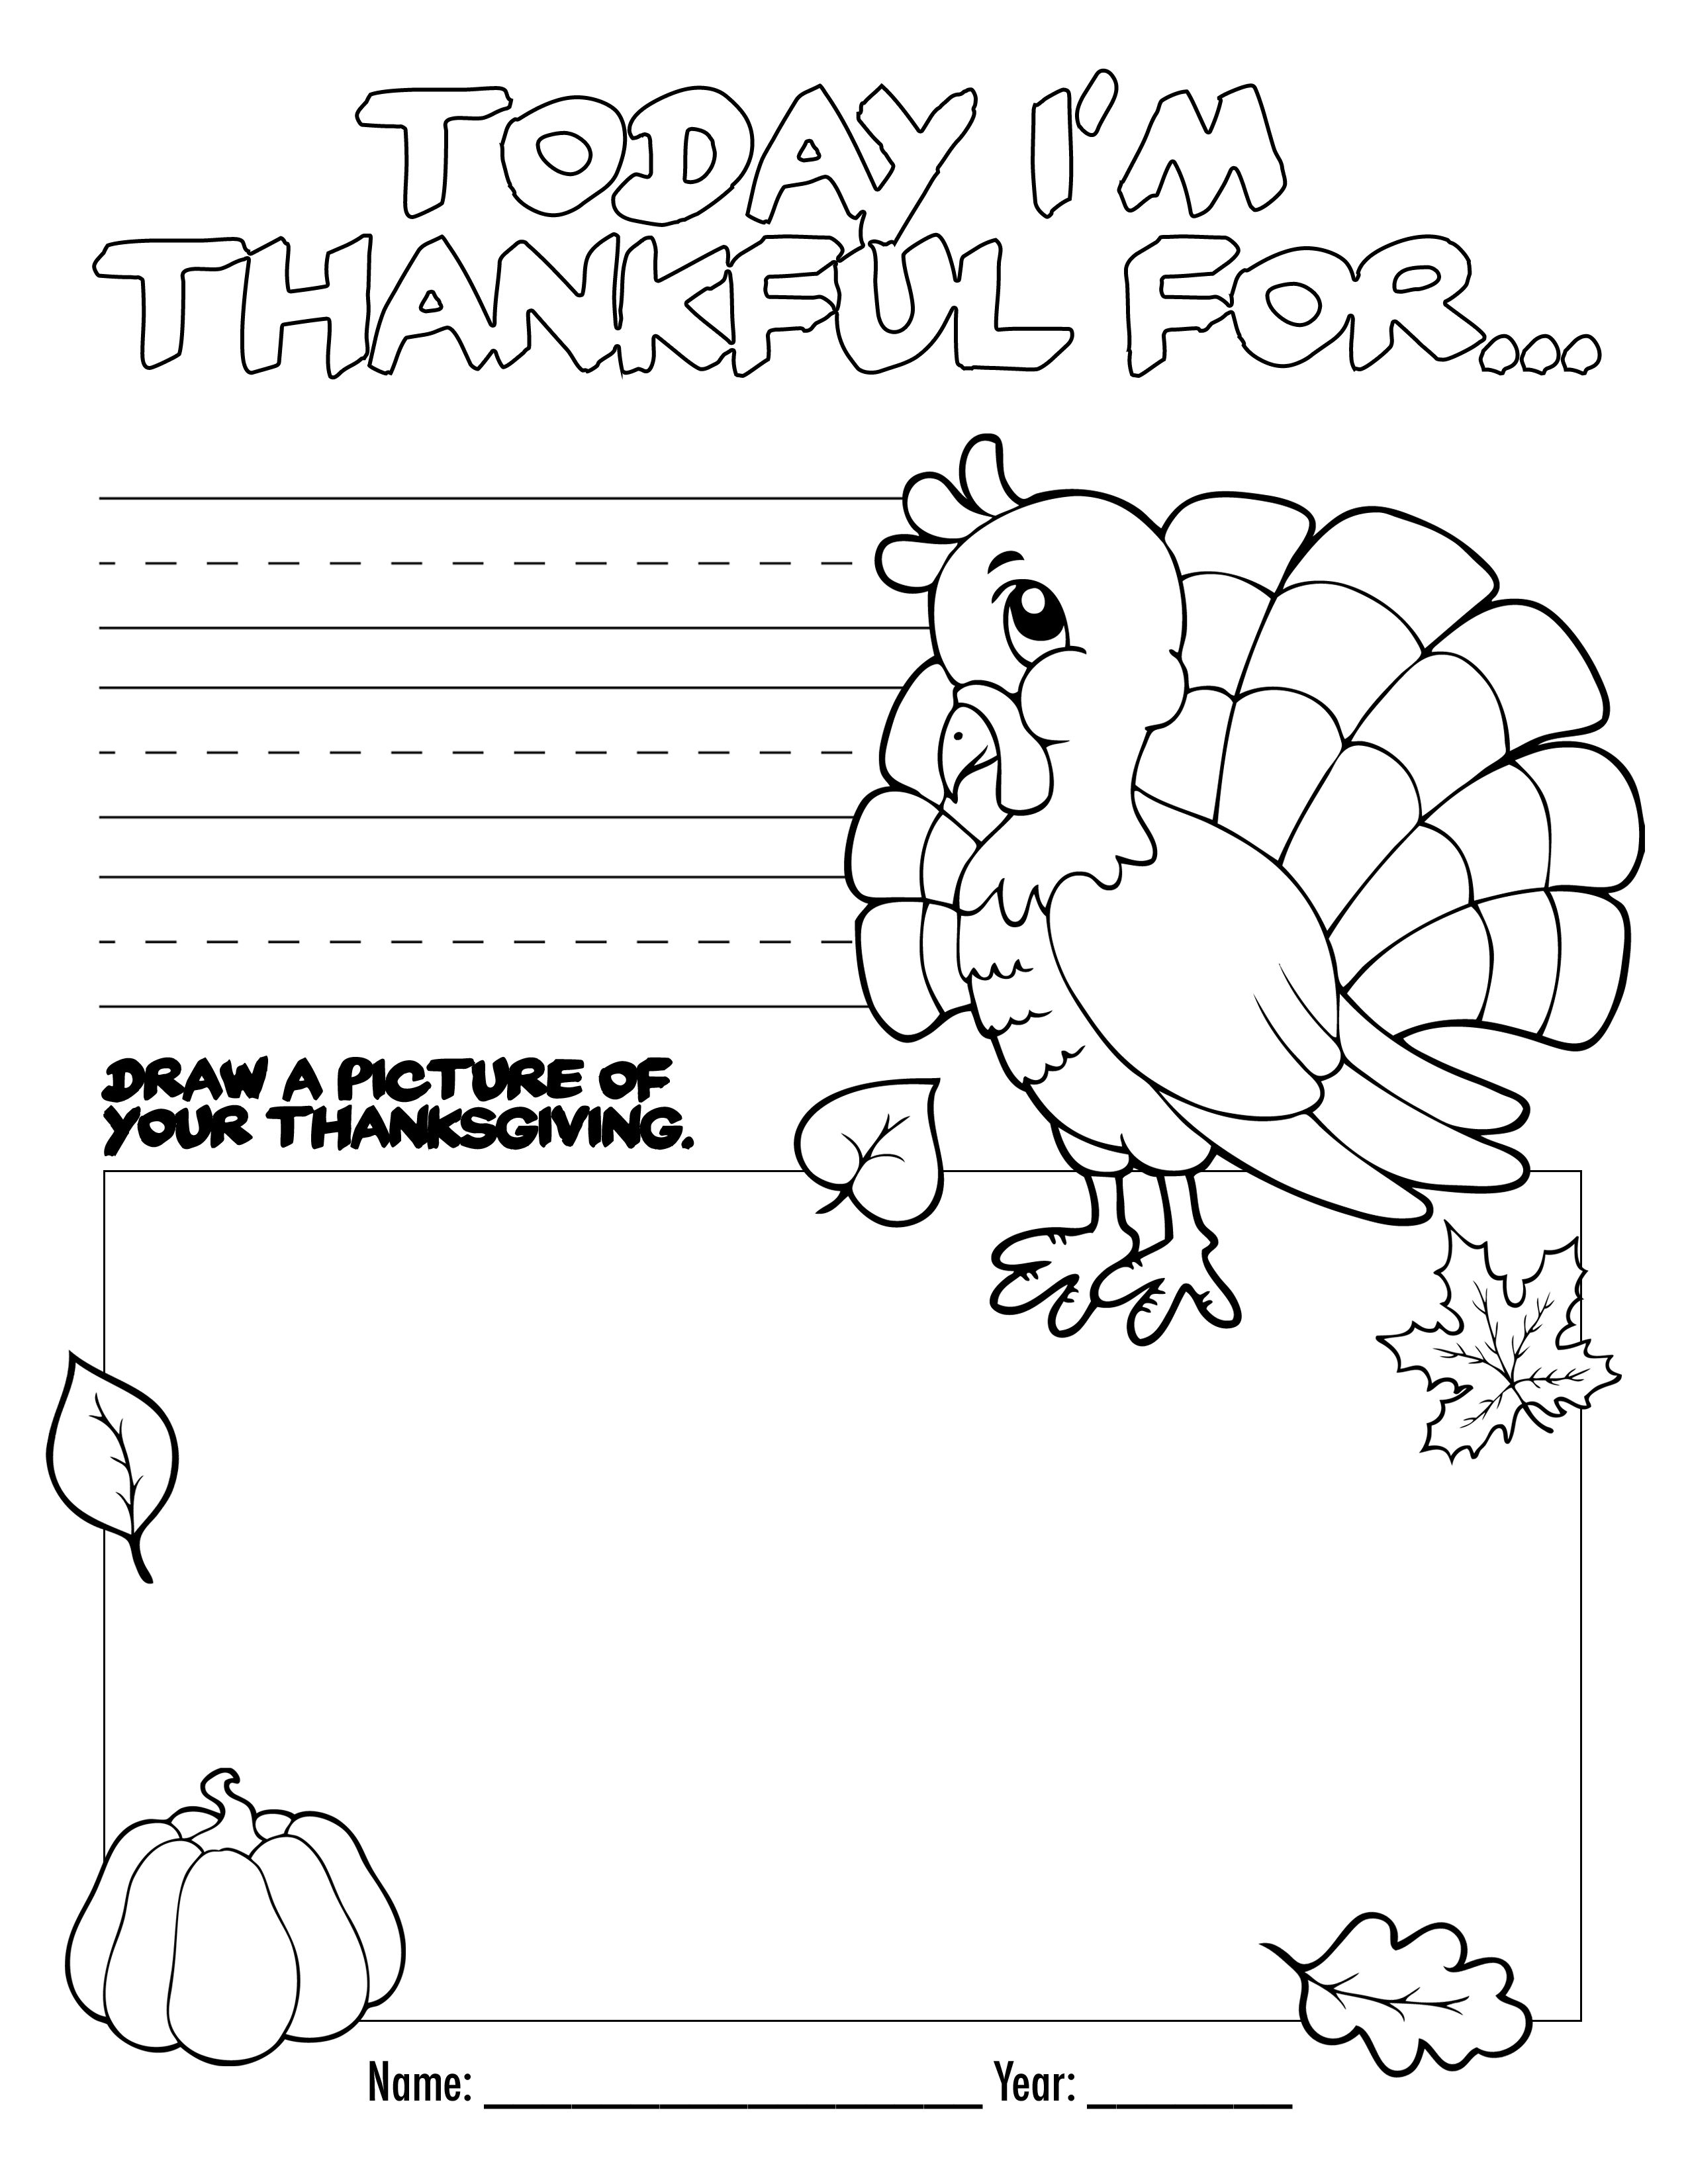 Thanksgiving Coloring Book Free Printable For The Kids!   Bloggers - Thanksgiving Printable Books Free